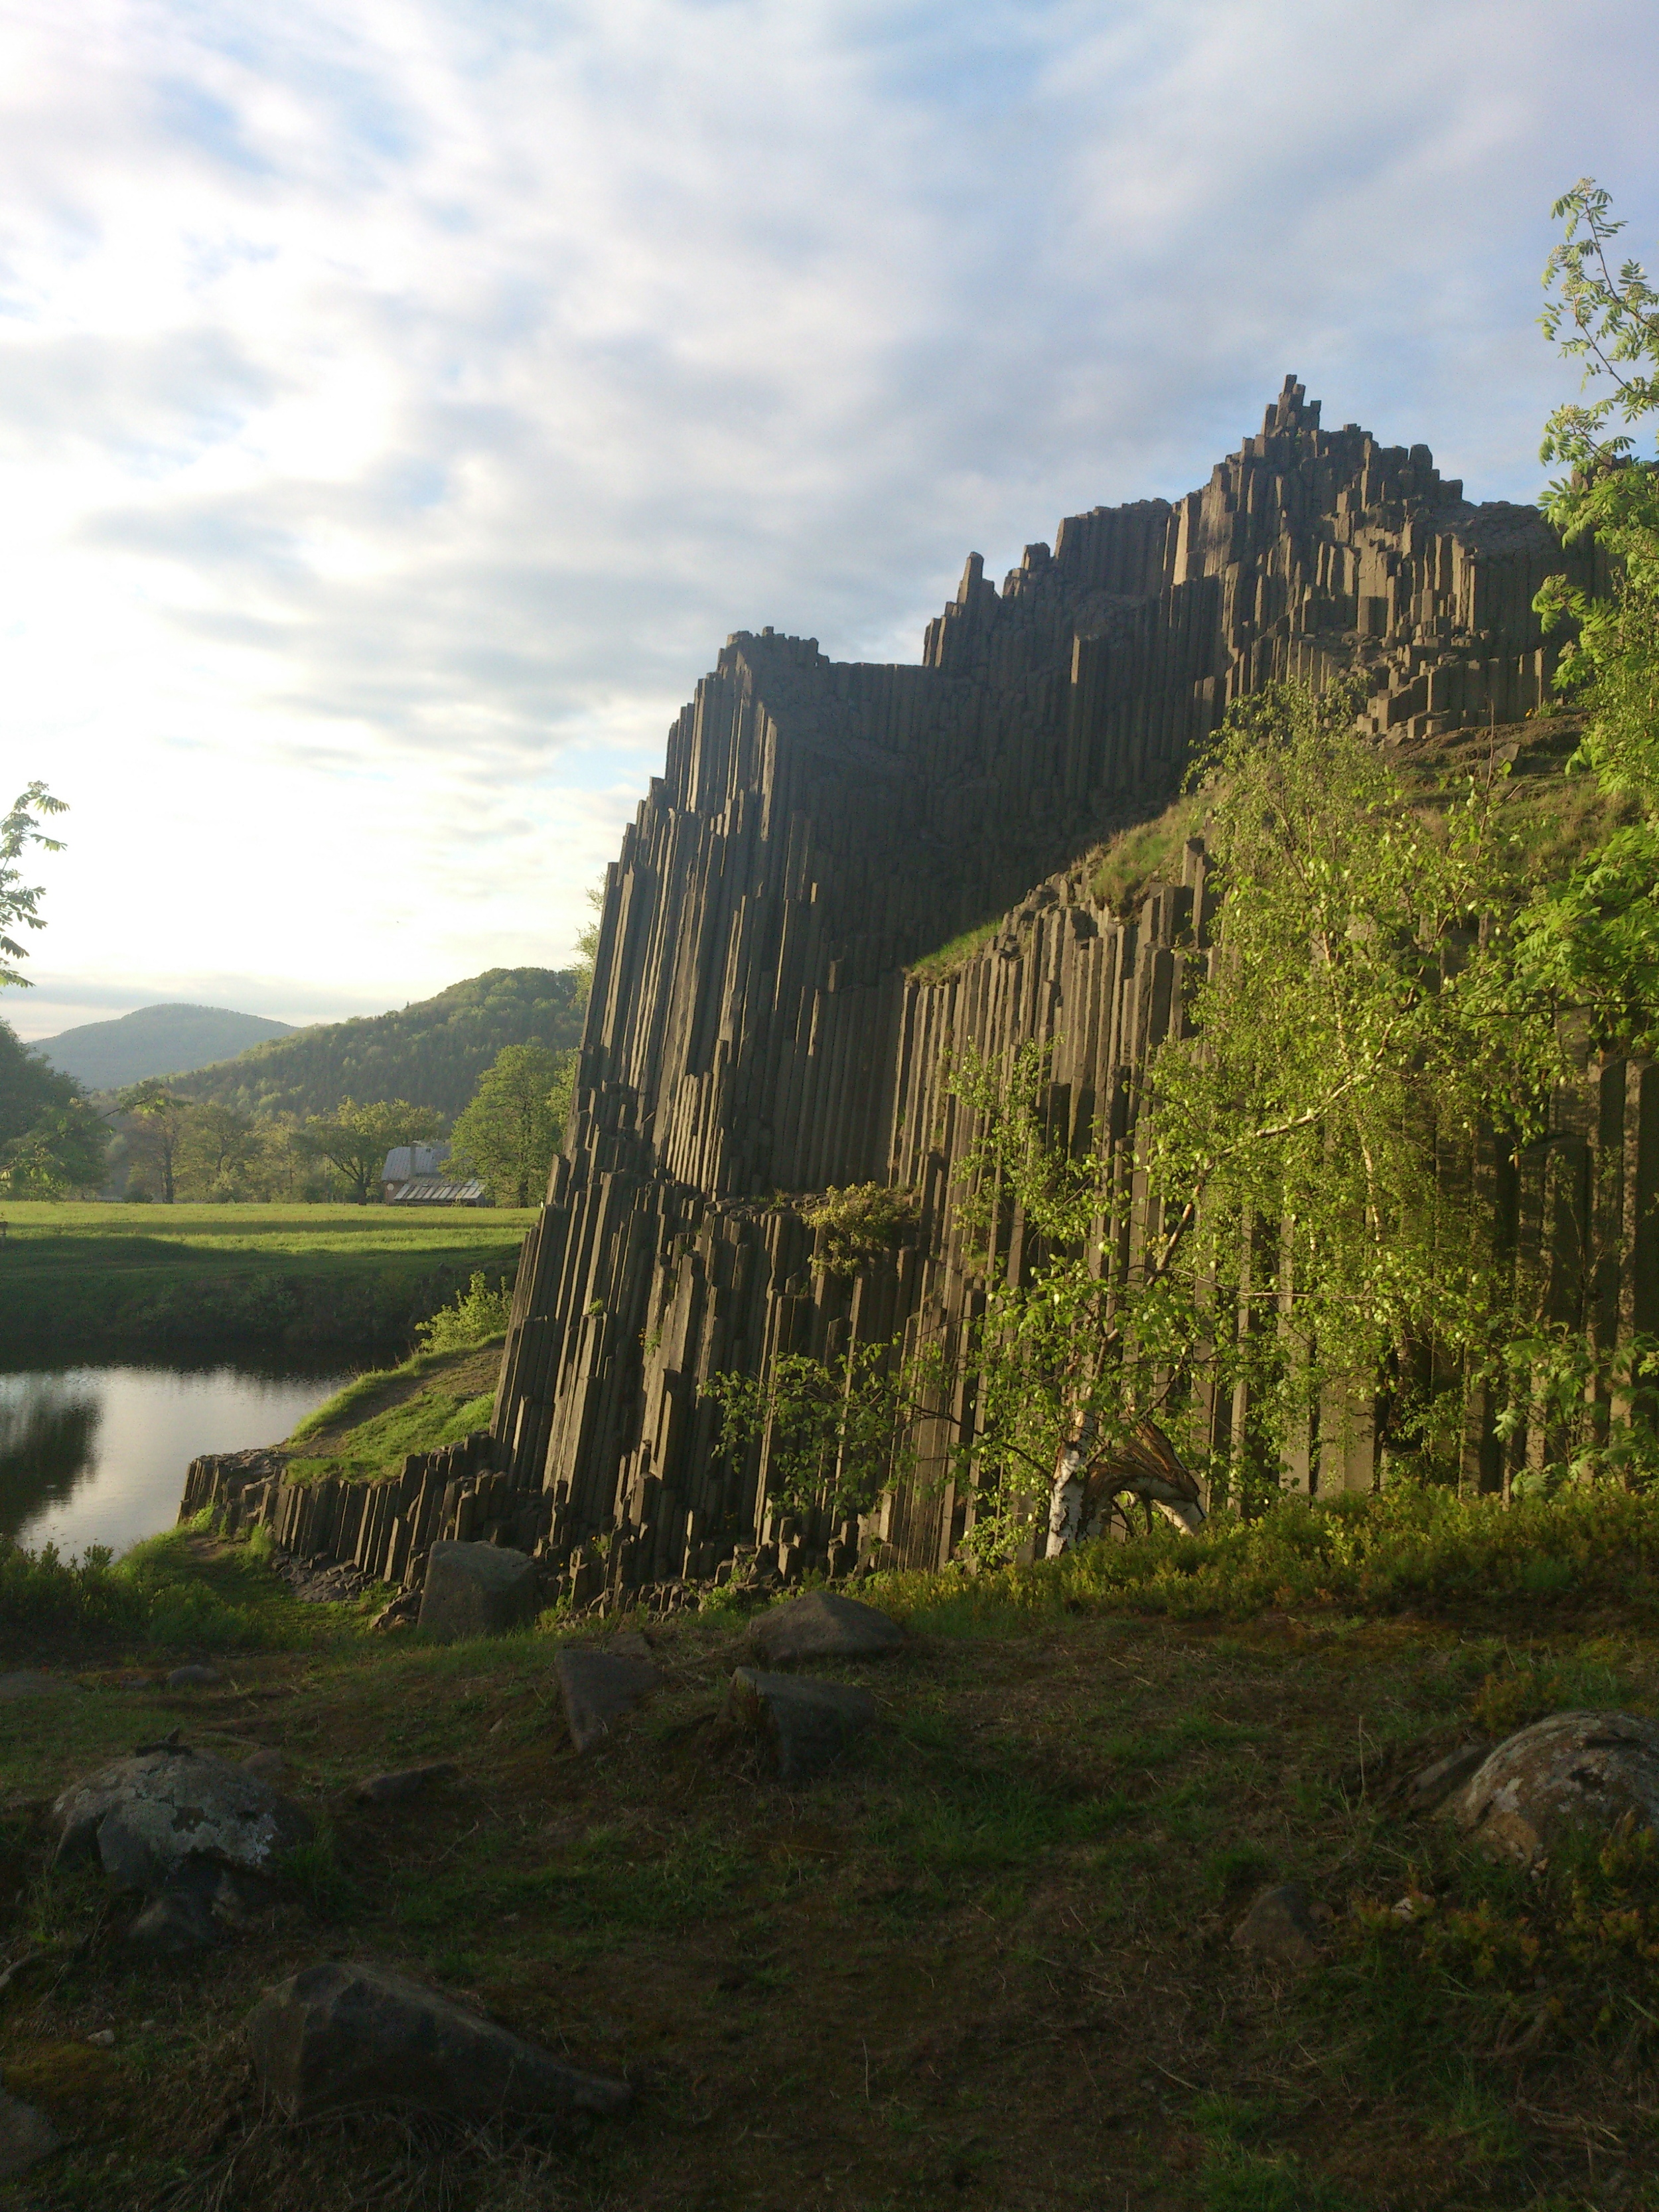 Manor Rock, a tourist attraction